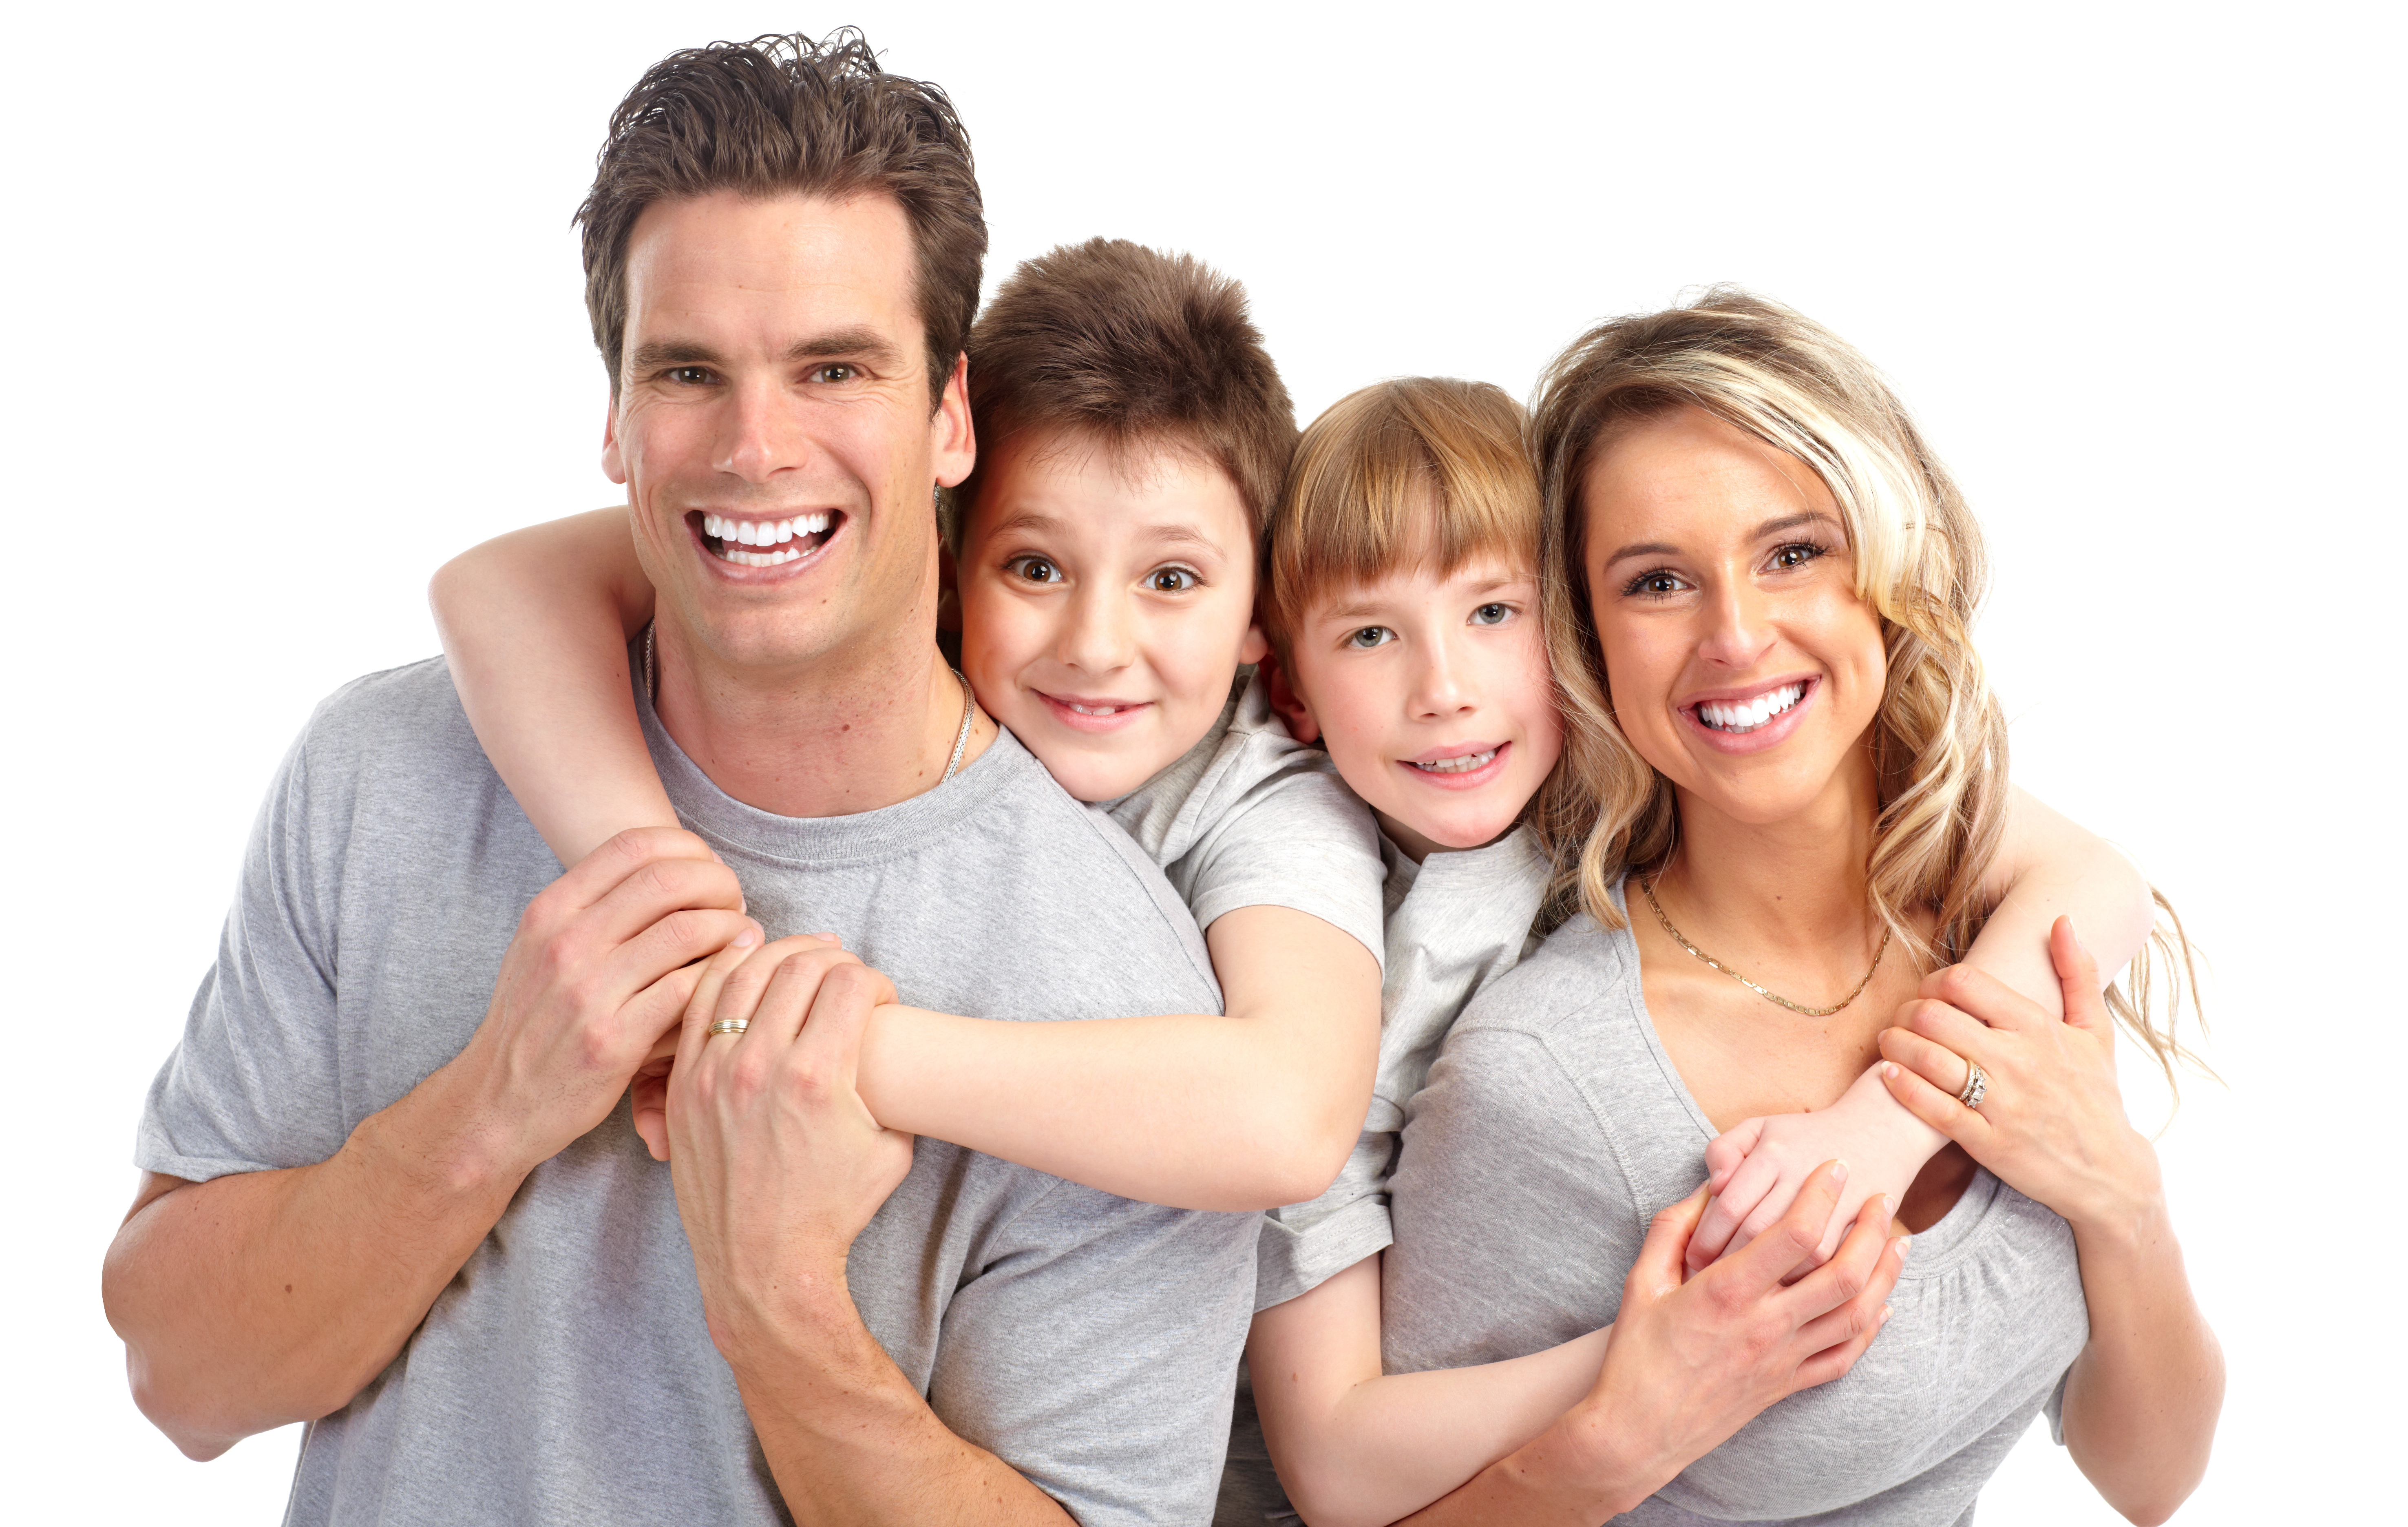 Family - Family Picture, Transparent background PNG HD thumbnail